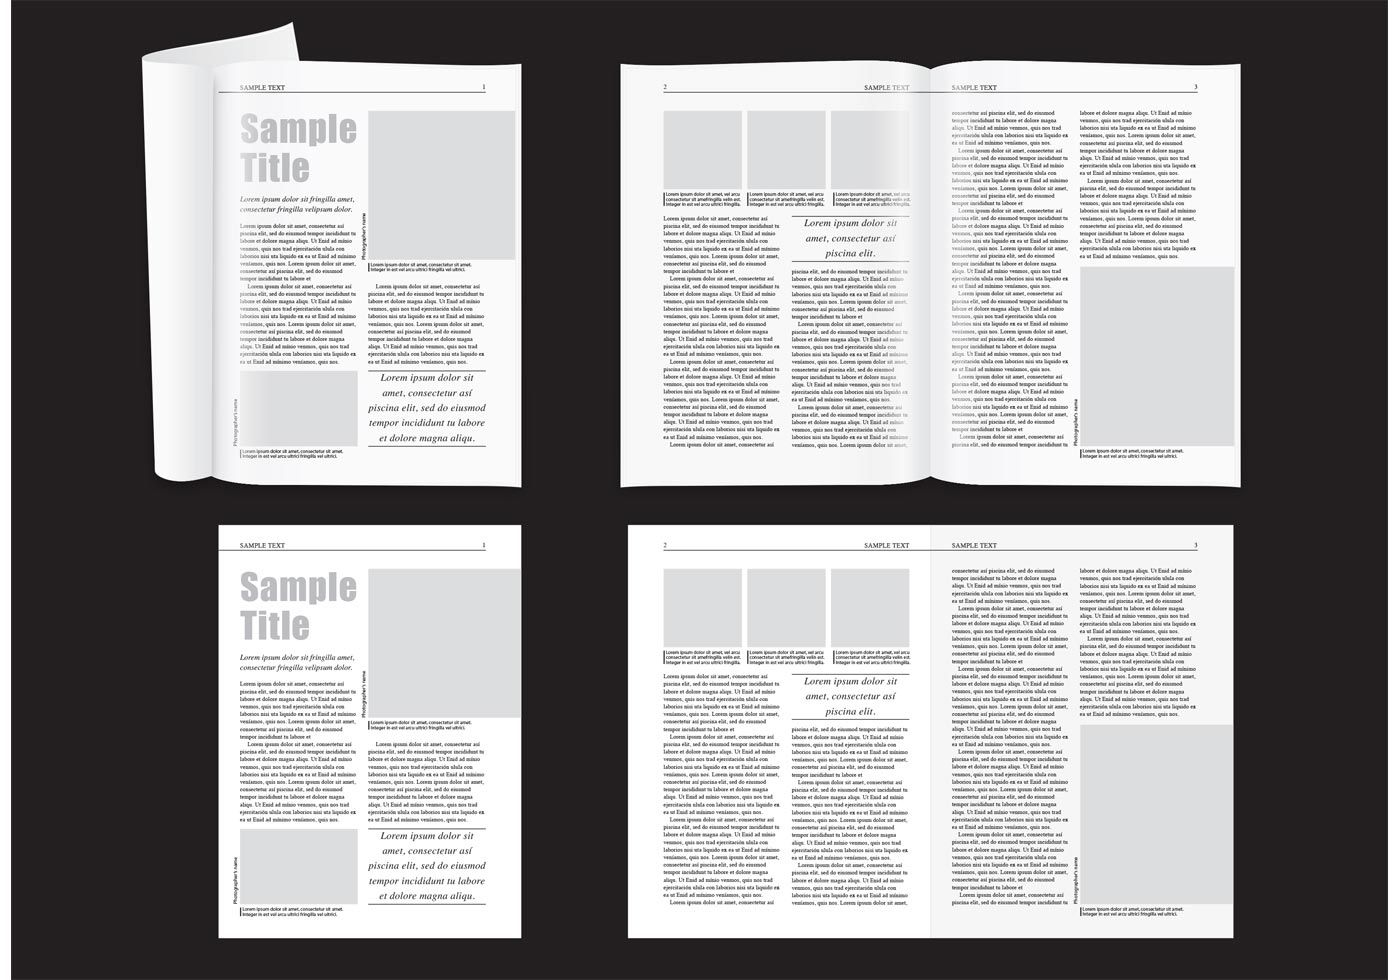 011 Wondrou Magazine Template For Microsoft Word Concept  Layout Design DownloadFull